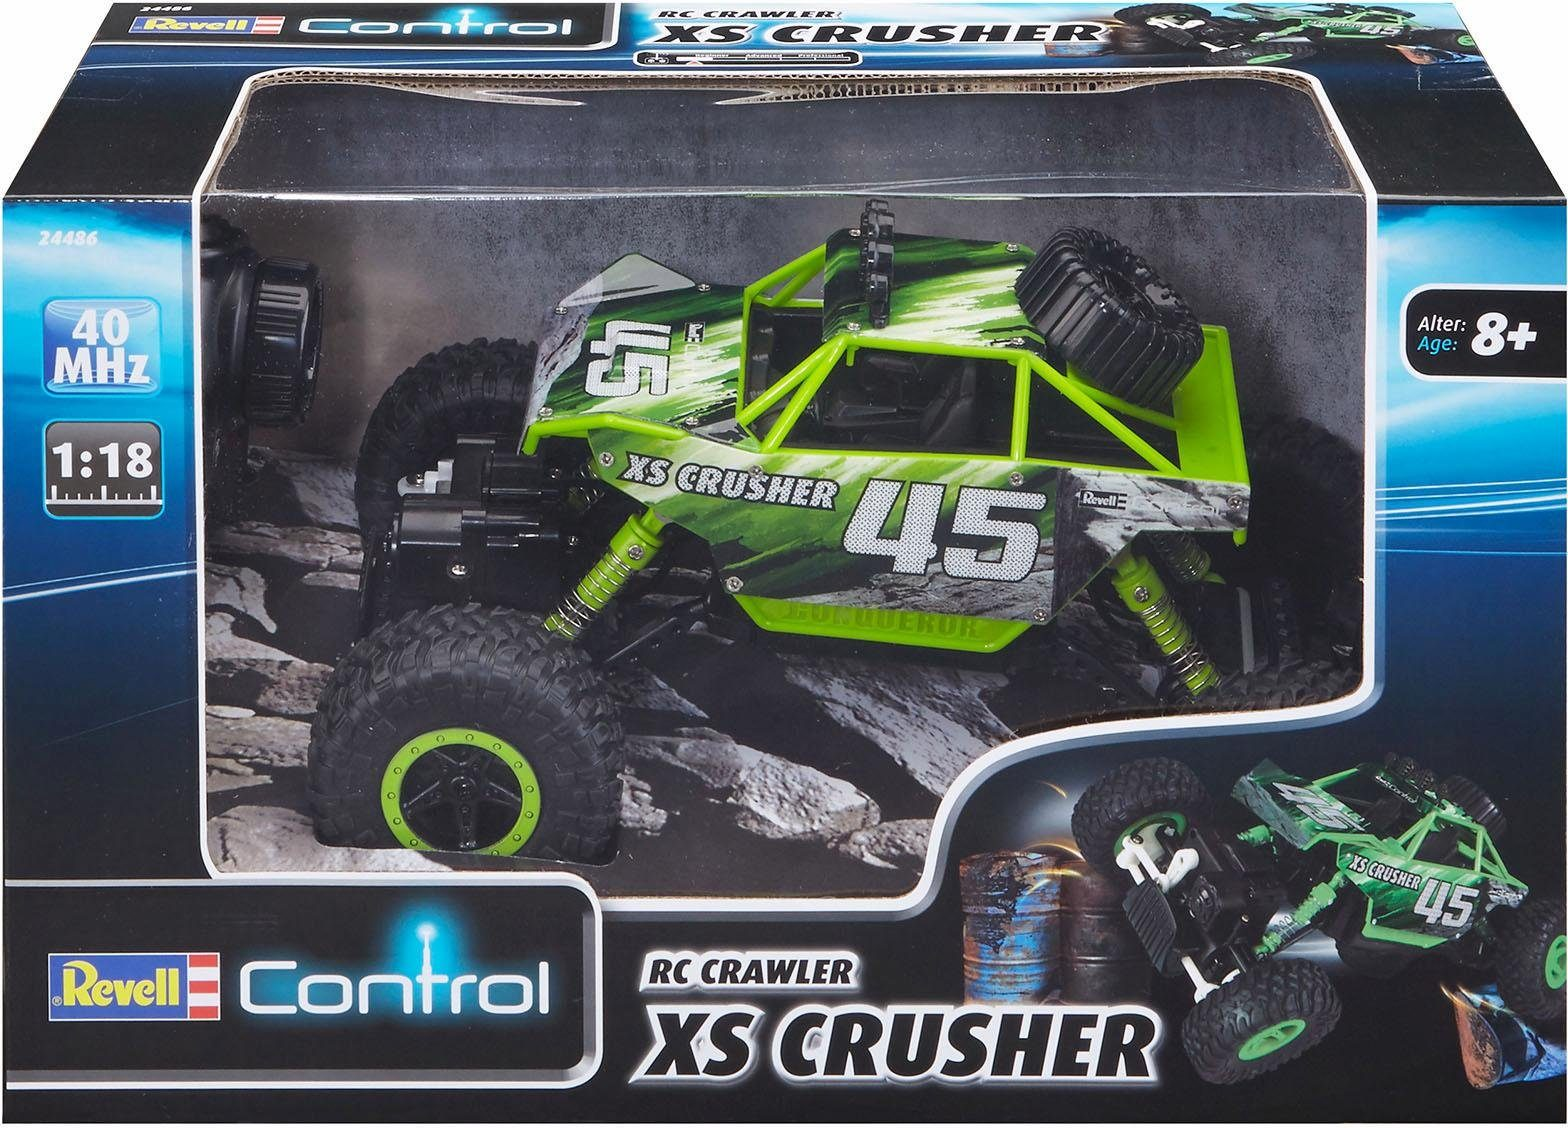 Revell RC Auto, »Revell® control, RC Crawler XS Crusher, 40 MHz, 1:18«